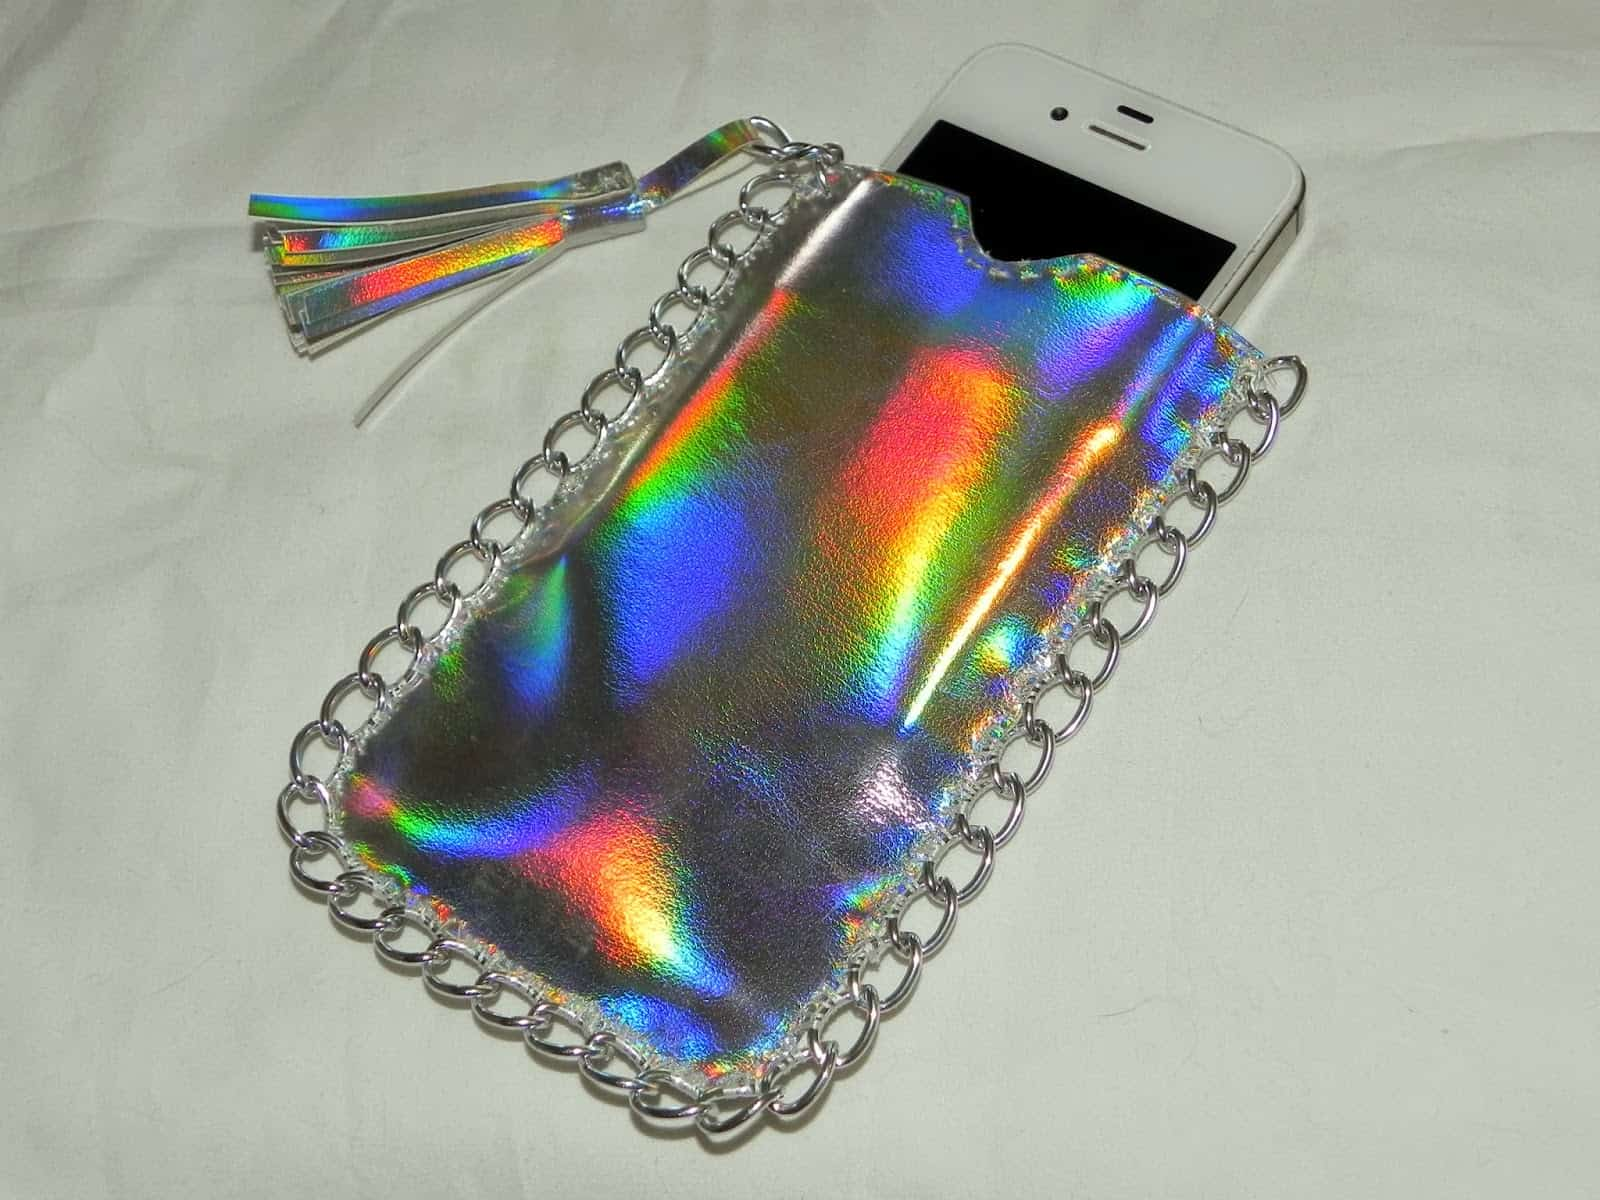 Holographic phone pocket